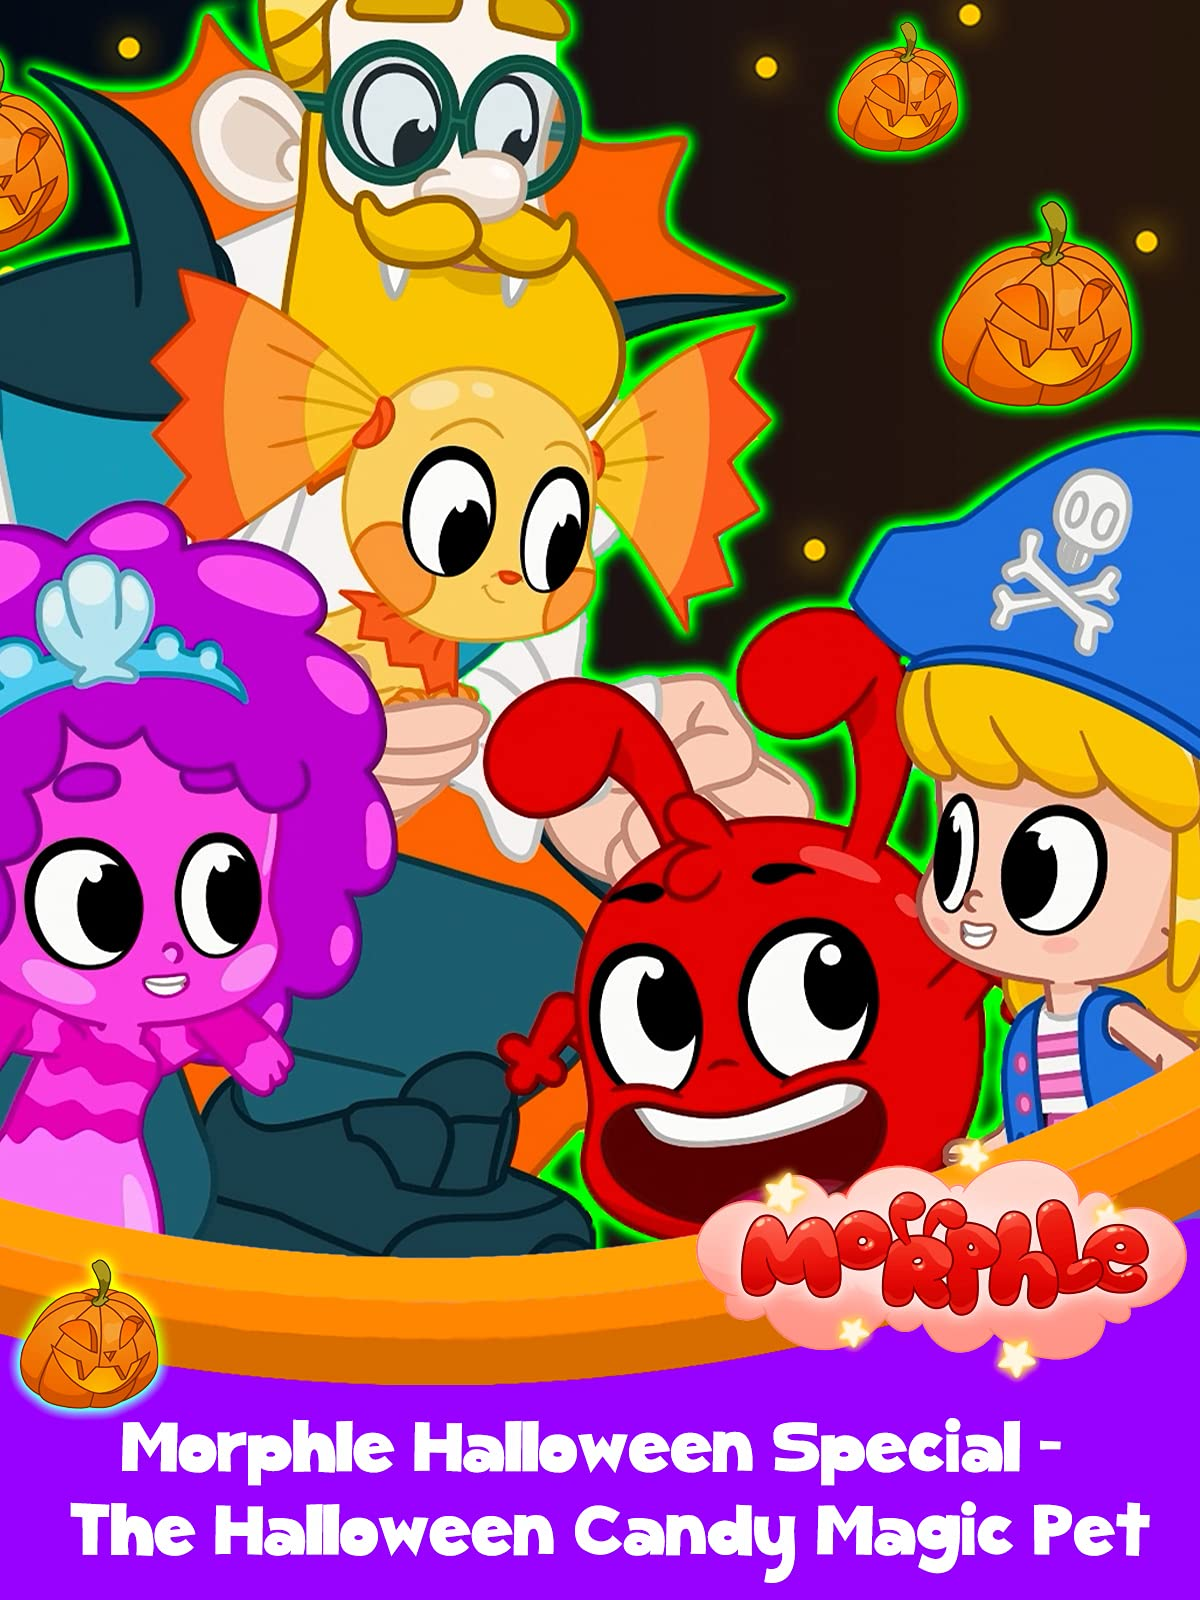 Morphle Halloween Special - The Halloween Candy Magic Pet